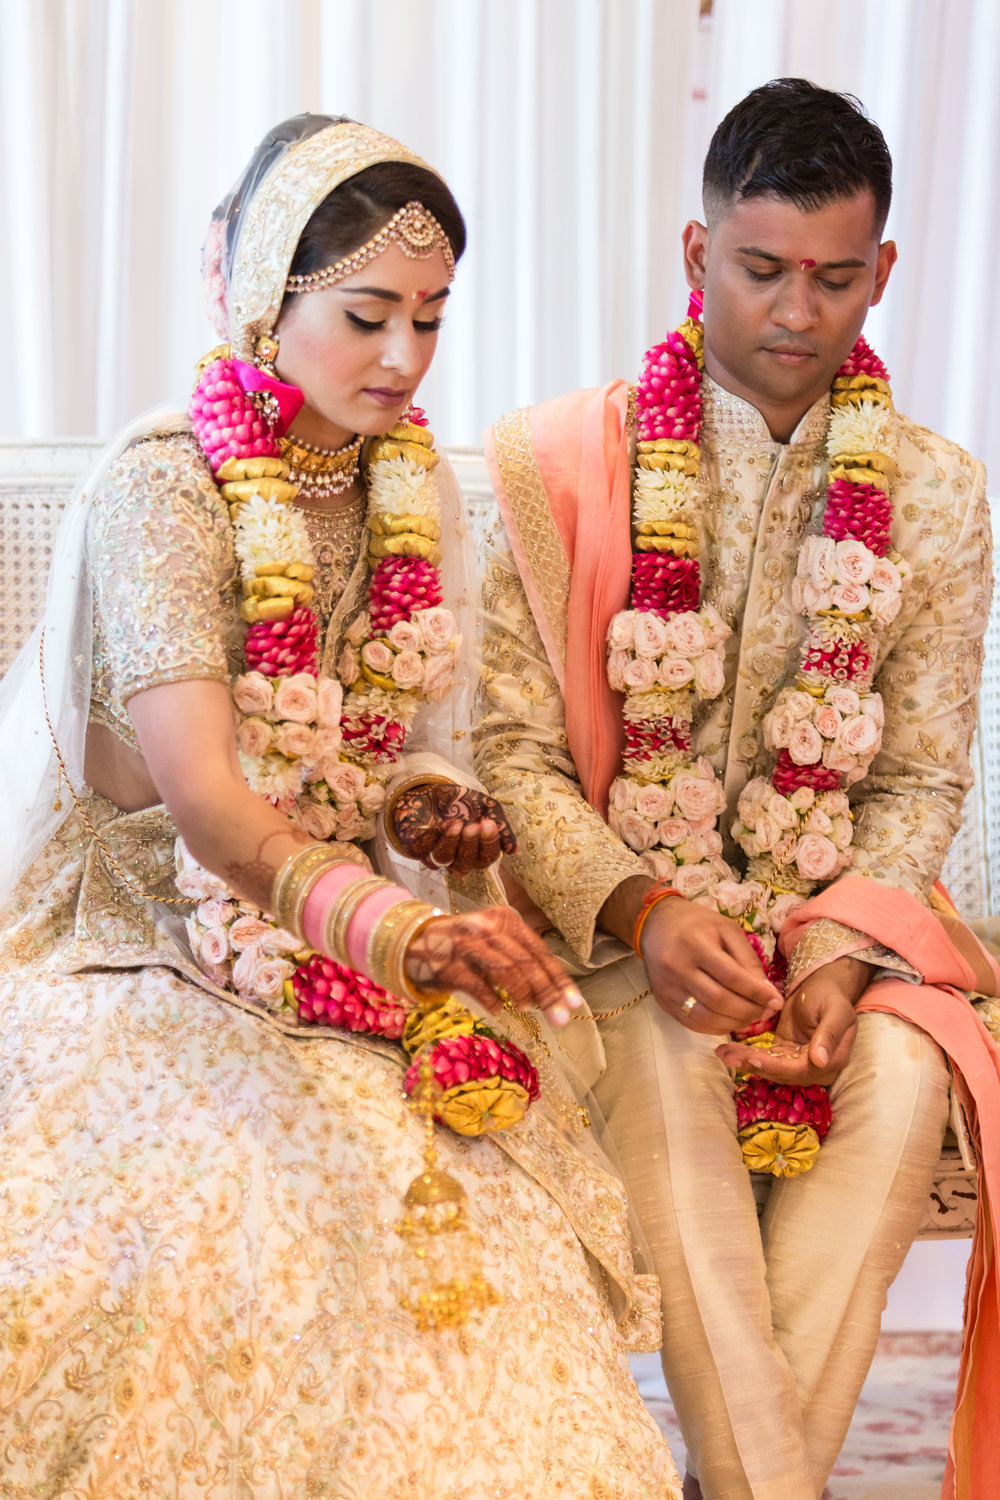 INDIAN WEDDING BRIDE AND GROOM MARRIAGE.jpg